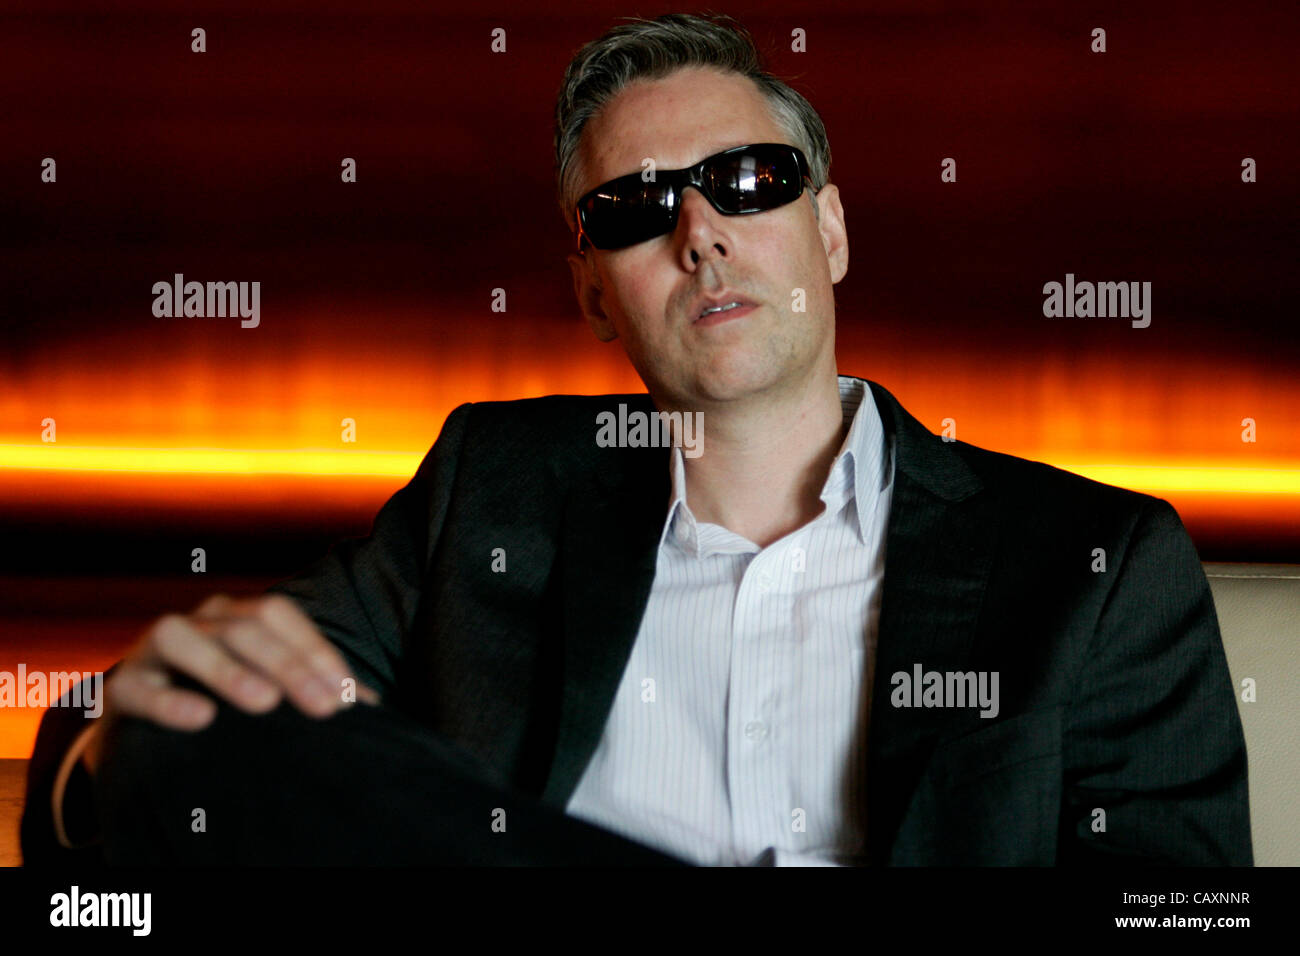 FILE - Adam Yauch, singer and founding member of seminal hip-hop trio the Beastie Boys, where he was known by his Stock Photo